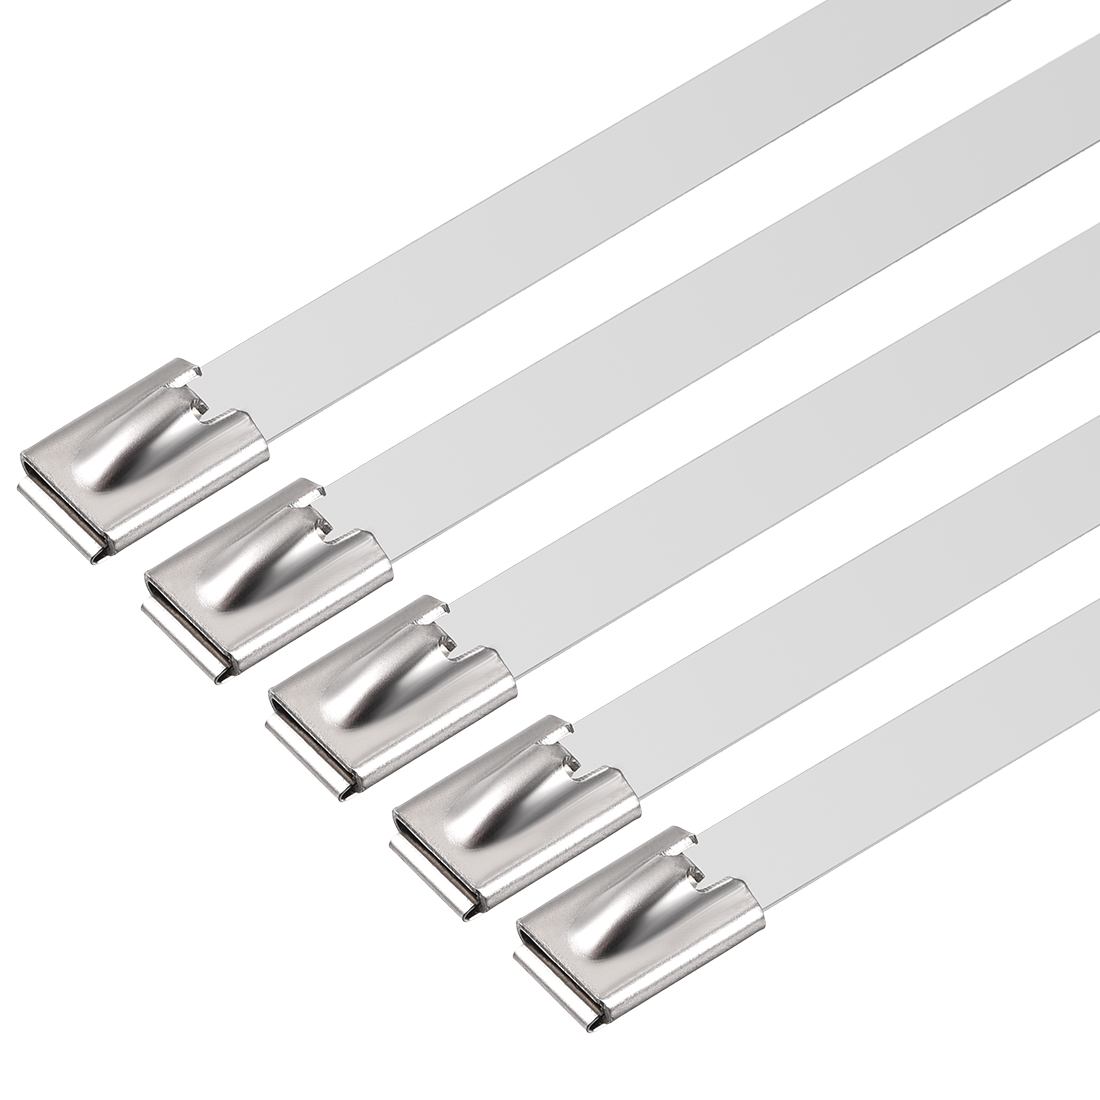 16 Inch Stainless Steel Cable Zip Ties 0.4 Inch Width Metal Exhaust Wrap 20pcs